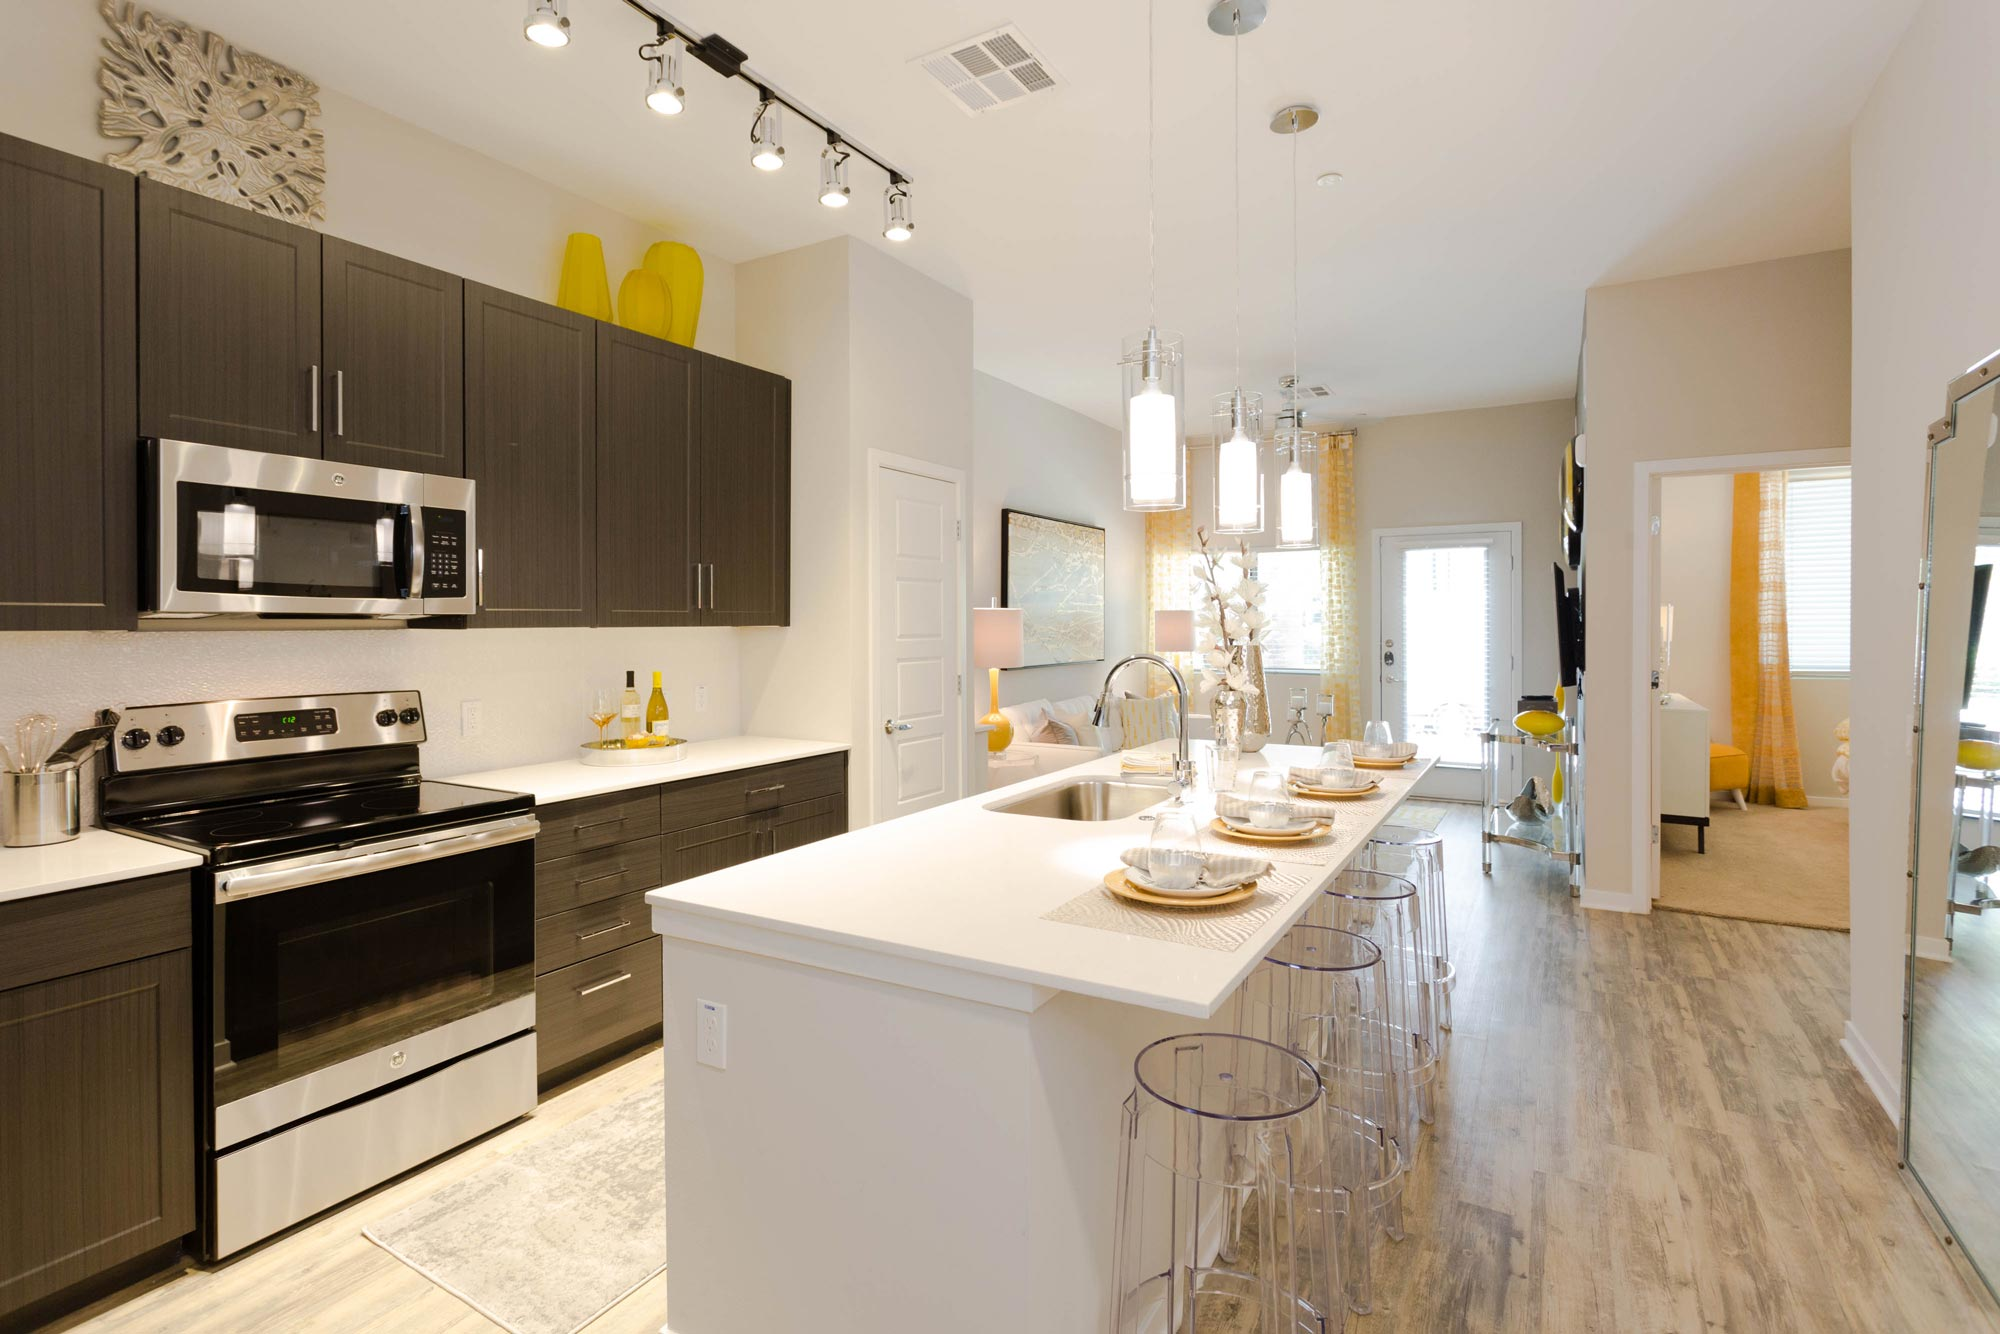 Unit Interior Kitchen & Living Room | Alta Midtown Phoenix Arizona Apartments